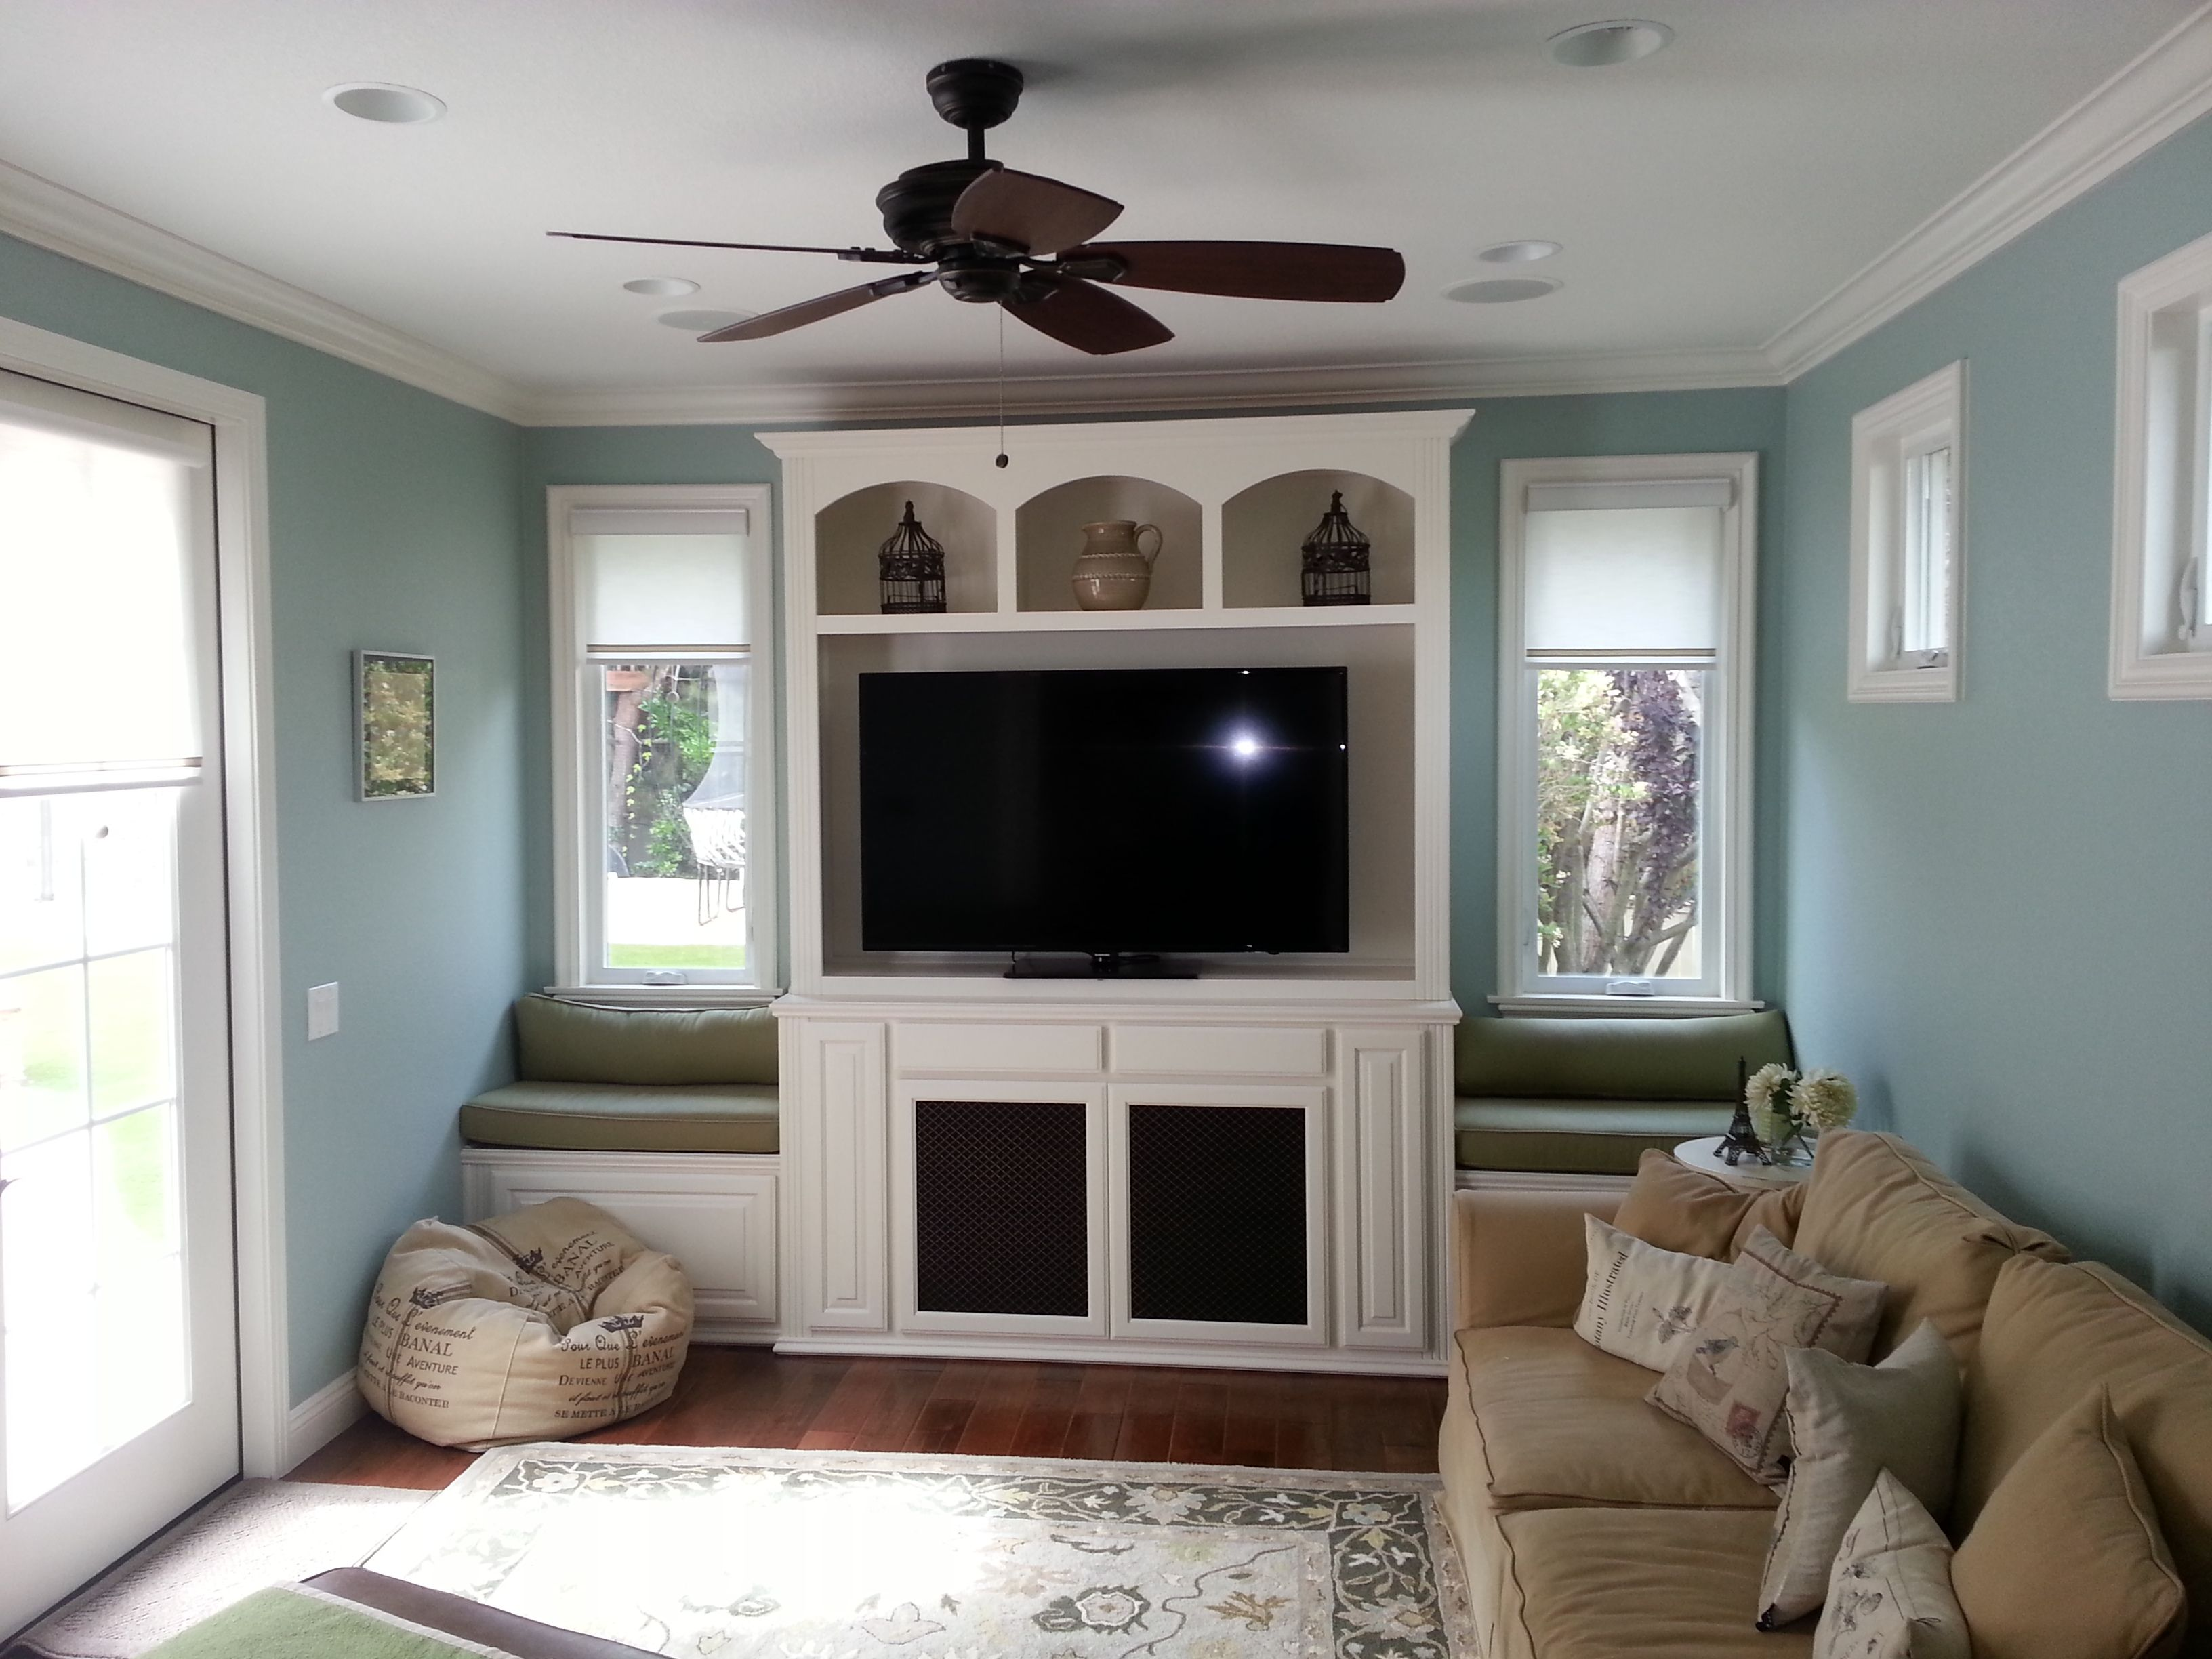 Tremendous Custom Built In Wall Unit With Window Benches Squirreltailoven Fun Painted Chair Ideas Images Squirreltailovenorg